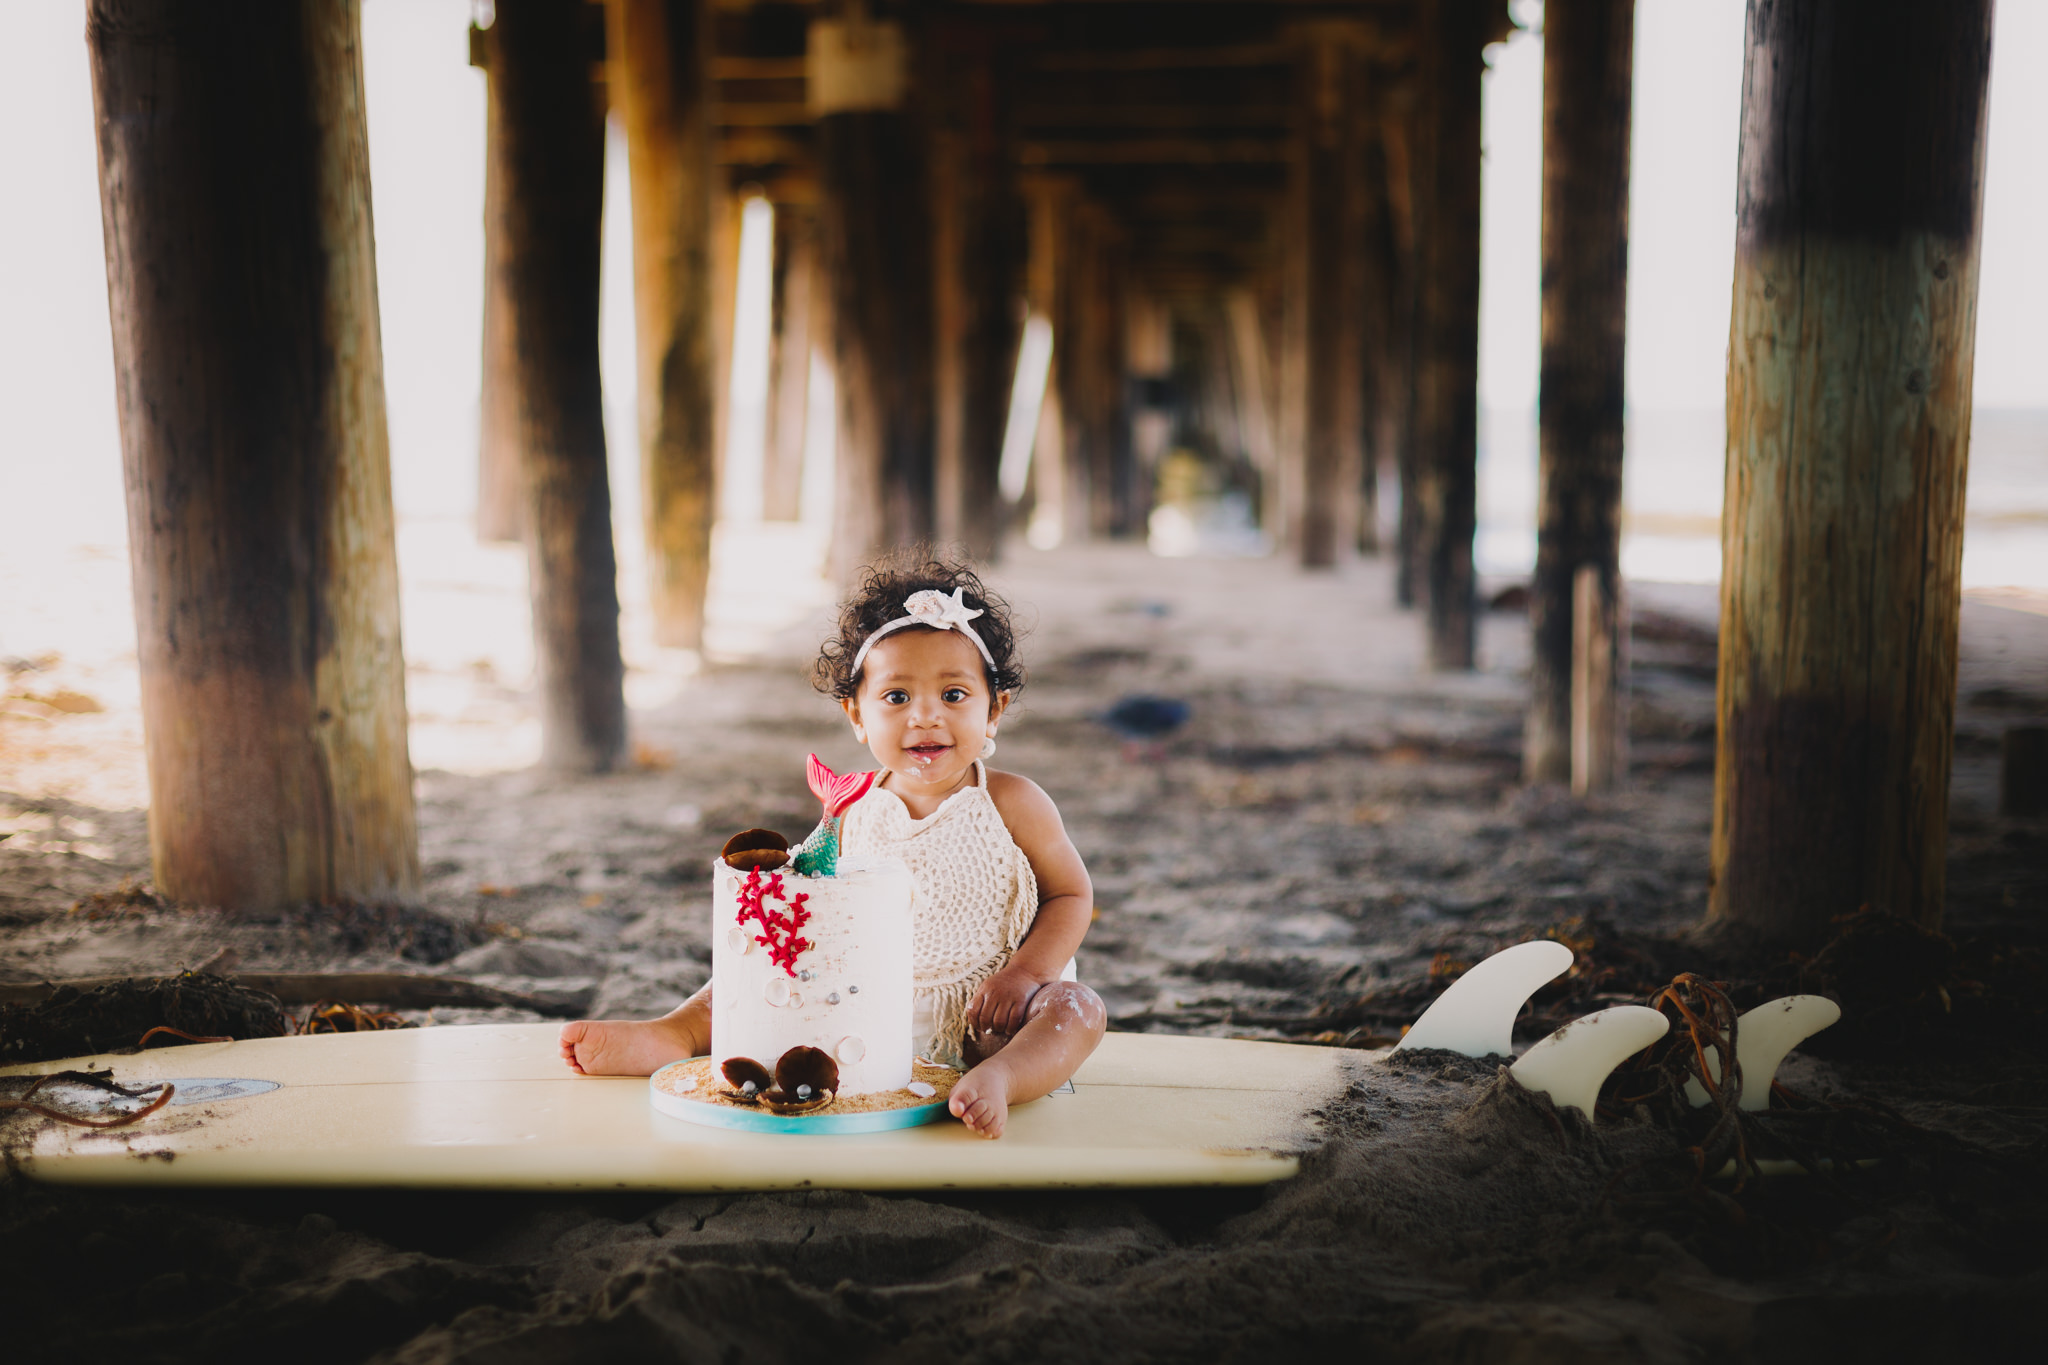 Archer Inspired Photography Cake Smash First Birthday Lifestyle Natural Light Documentary Family Photographer-23.jpg